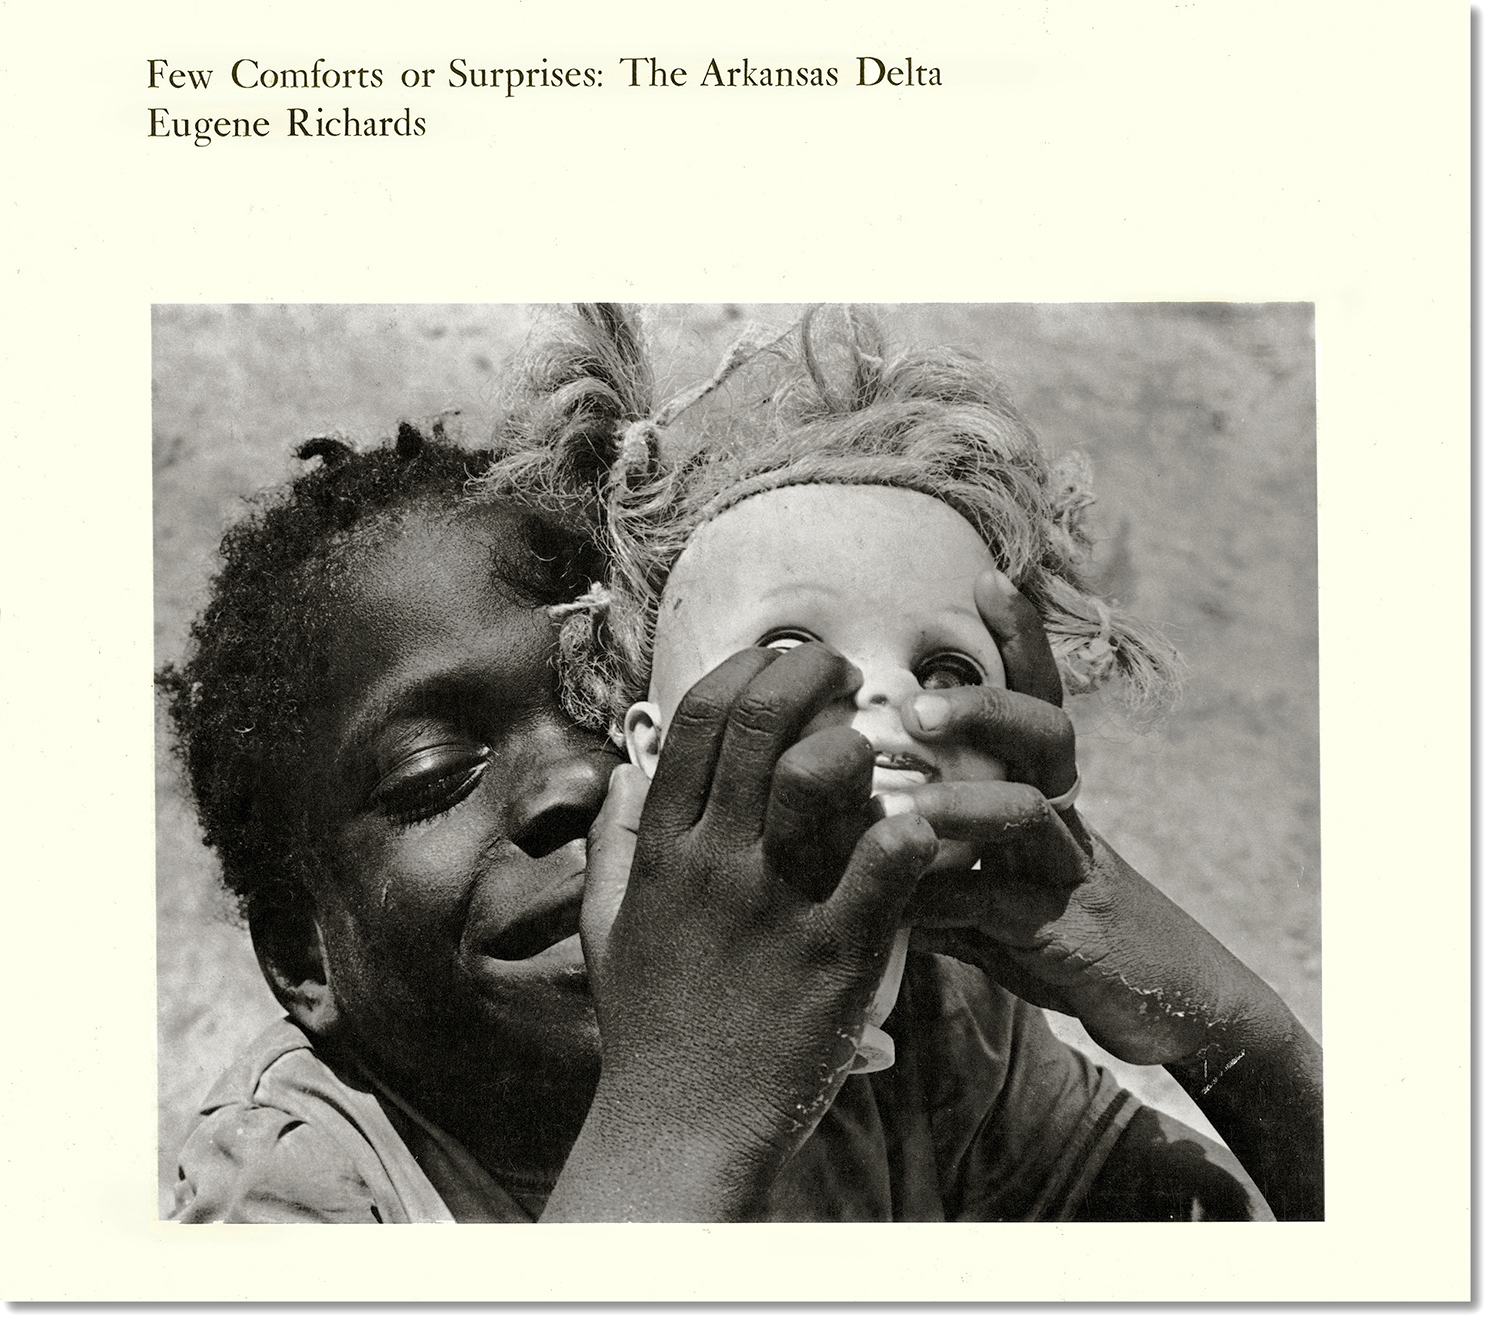 Richards' first book,   Few Comforts or Surprises: The Arkansas Delta  is a documentation of life in the impoverished and racially troubled South.  MIT Press, 1973